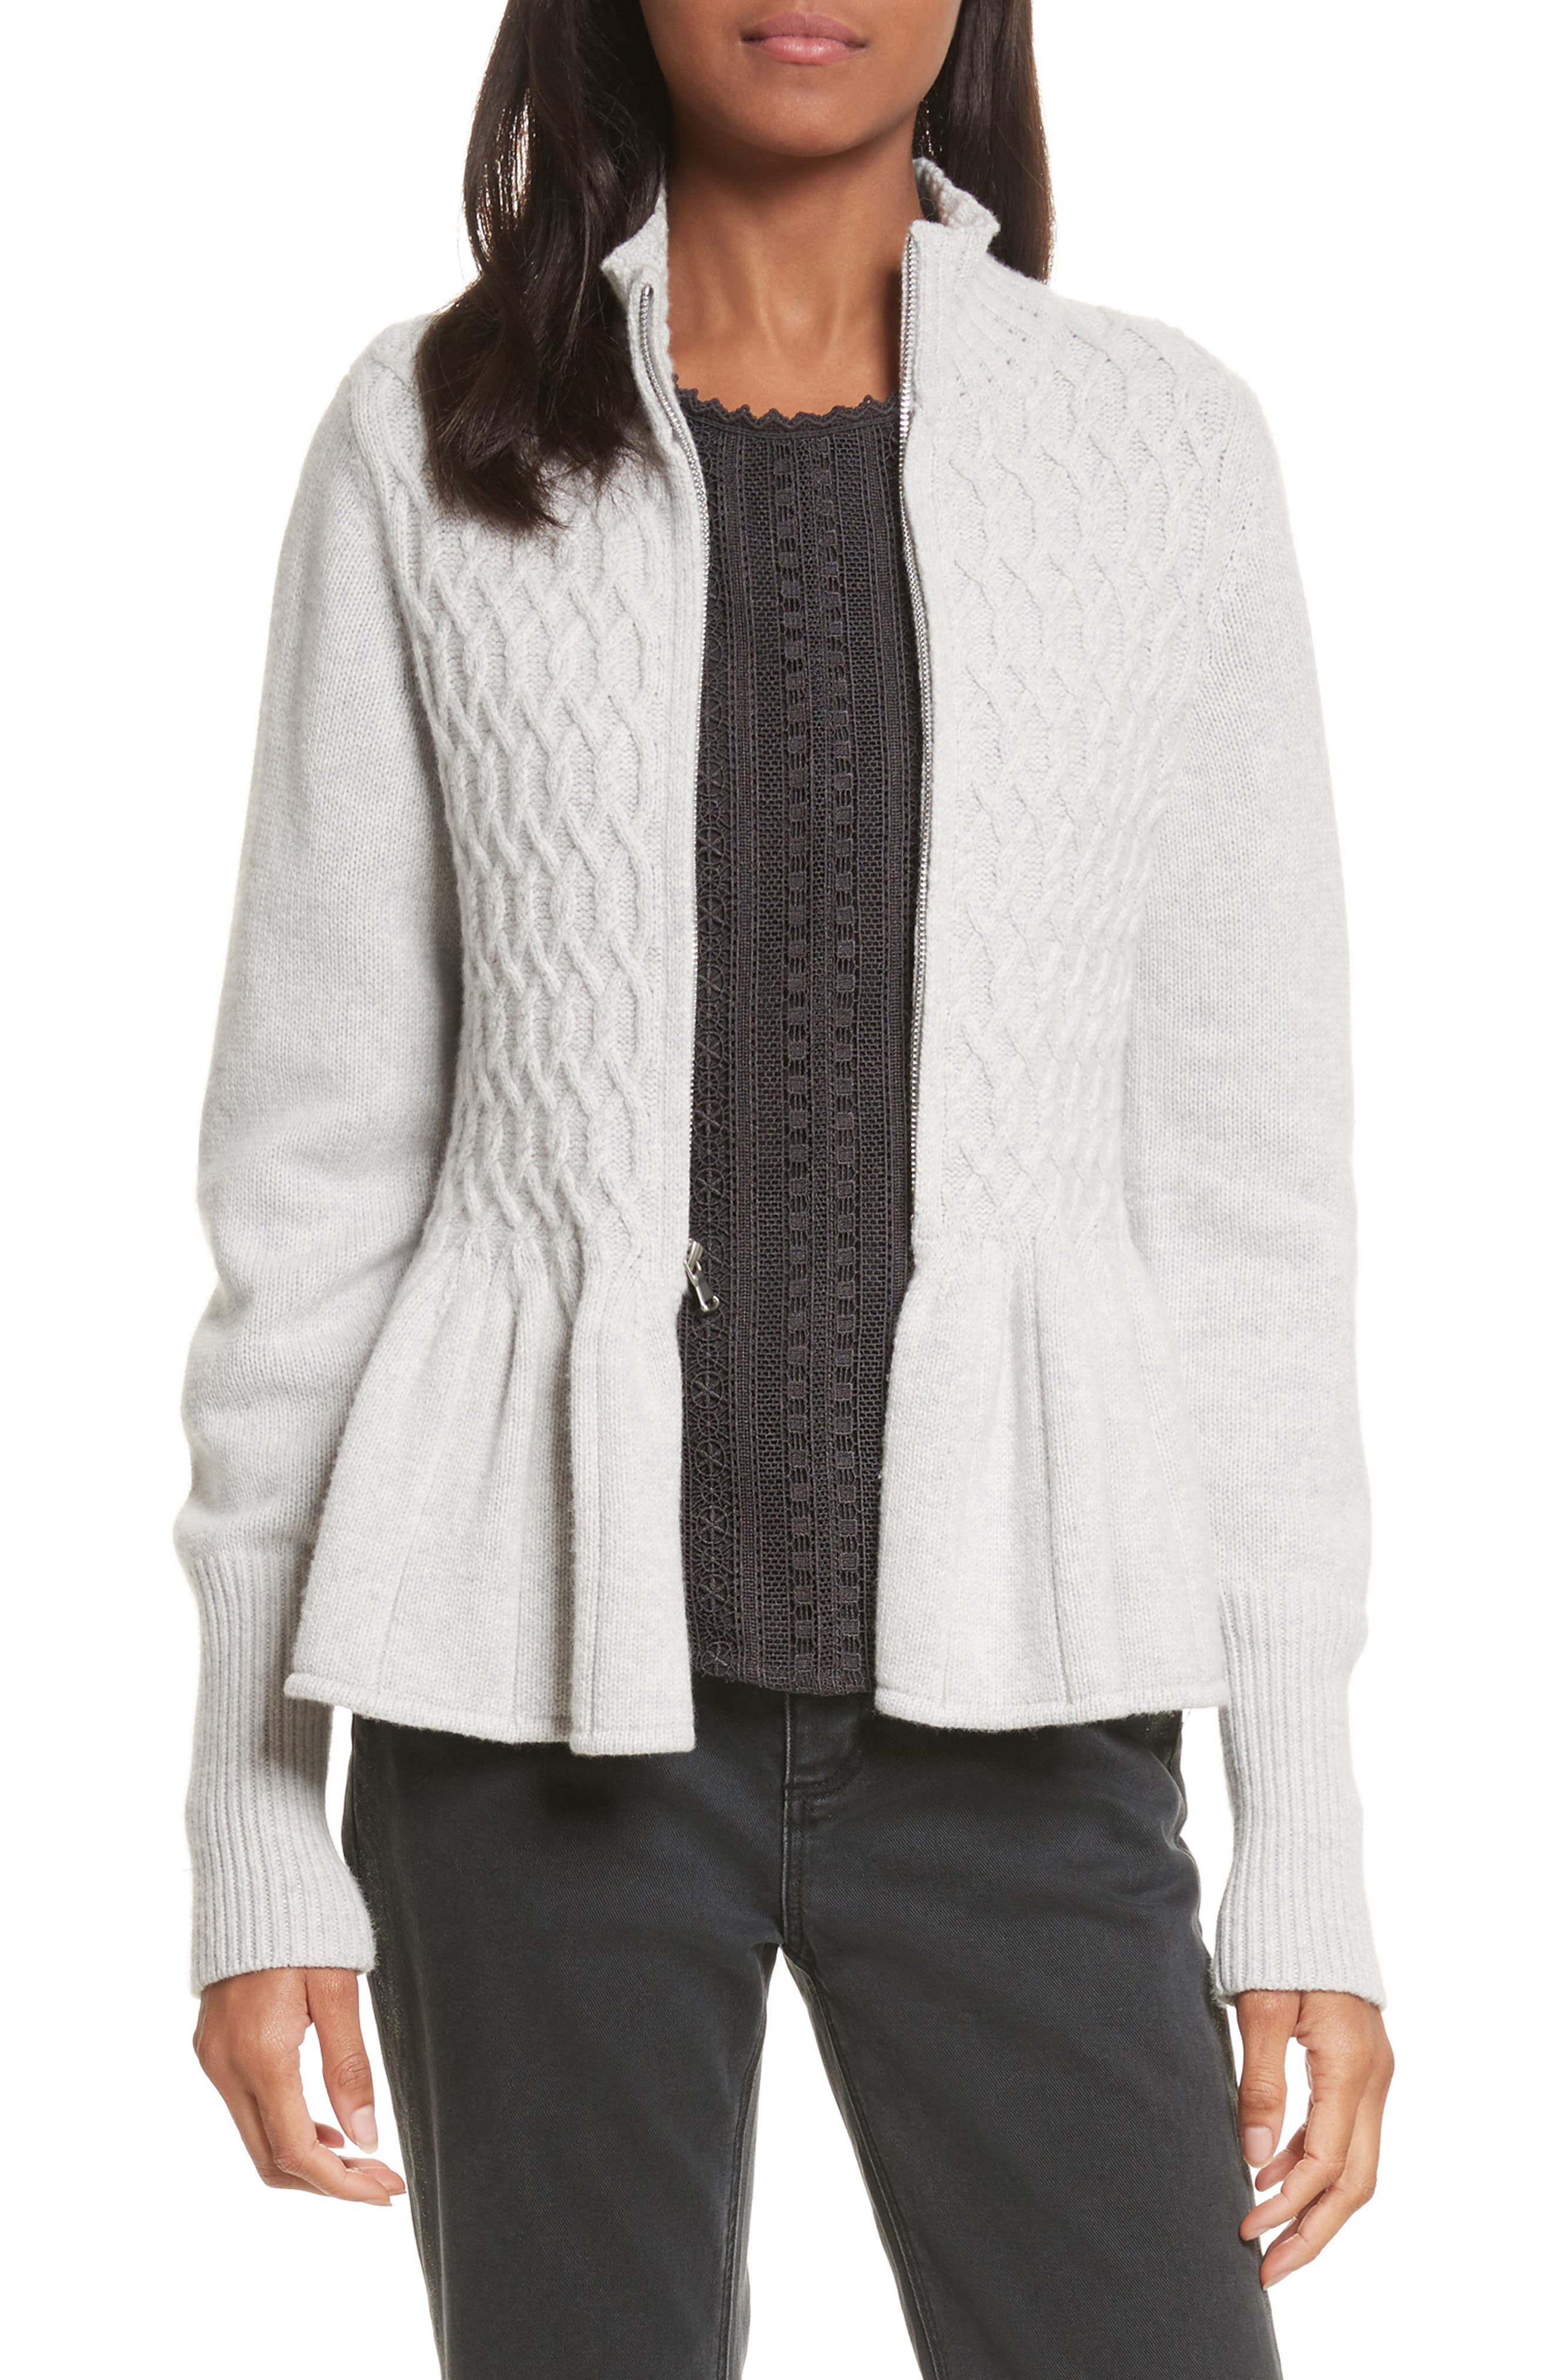 Main Image - La Vie Rebecca Taylor Cable Knit Front Zip Cardigan